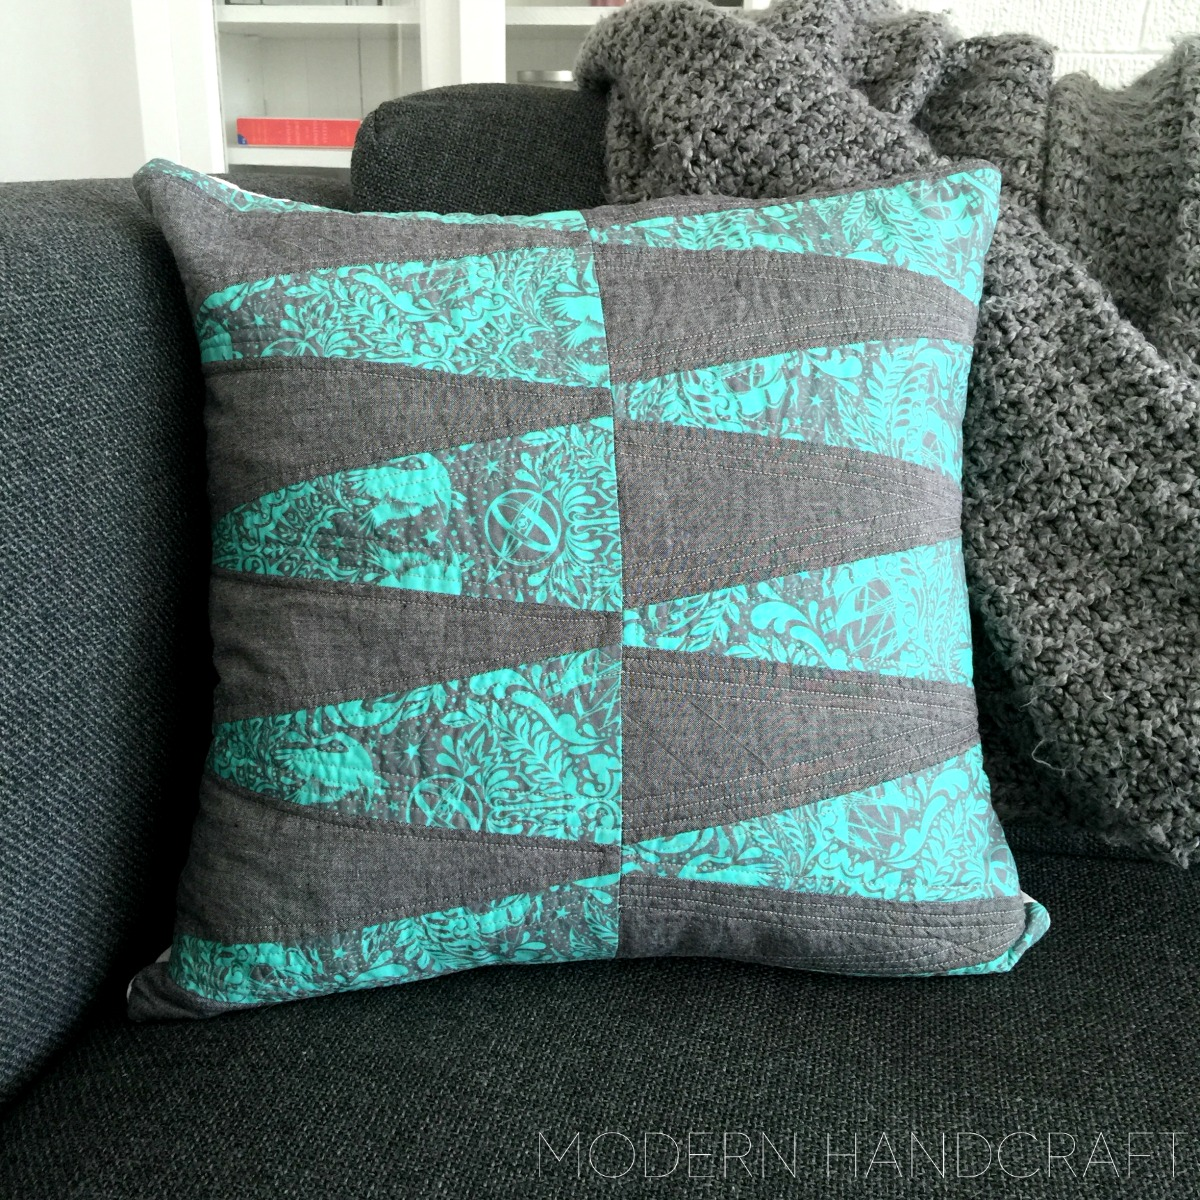 Modern Handcraft //  Stacked Dresden Pillow: A Tutorial